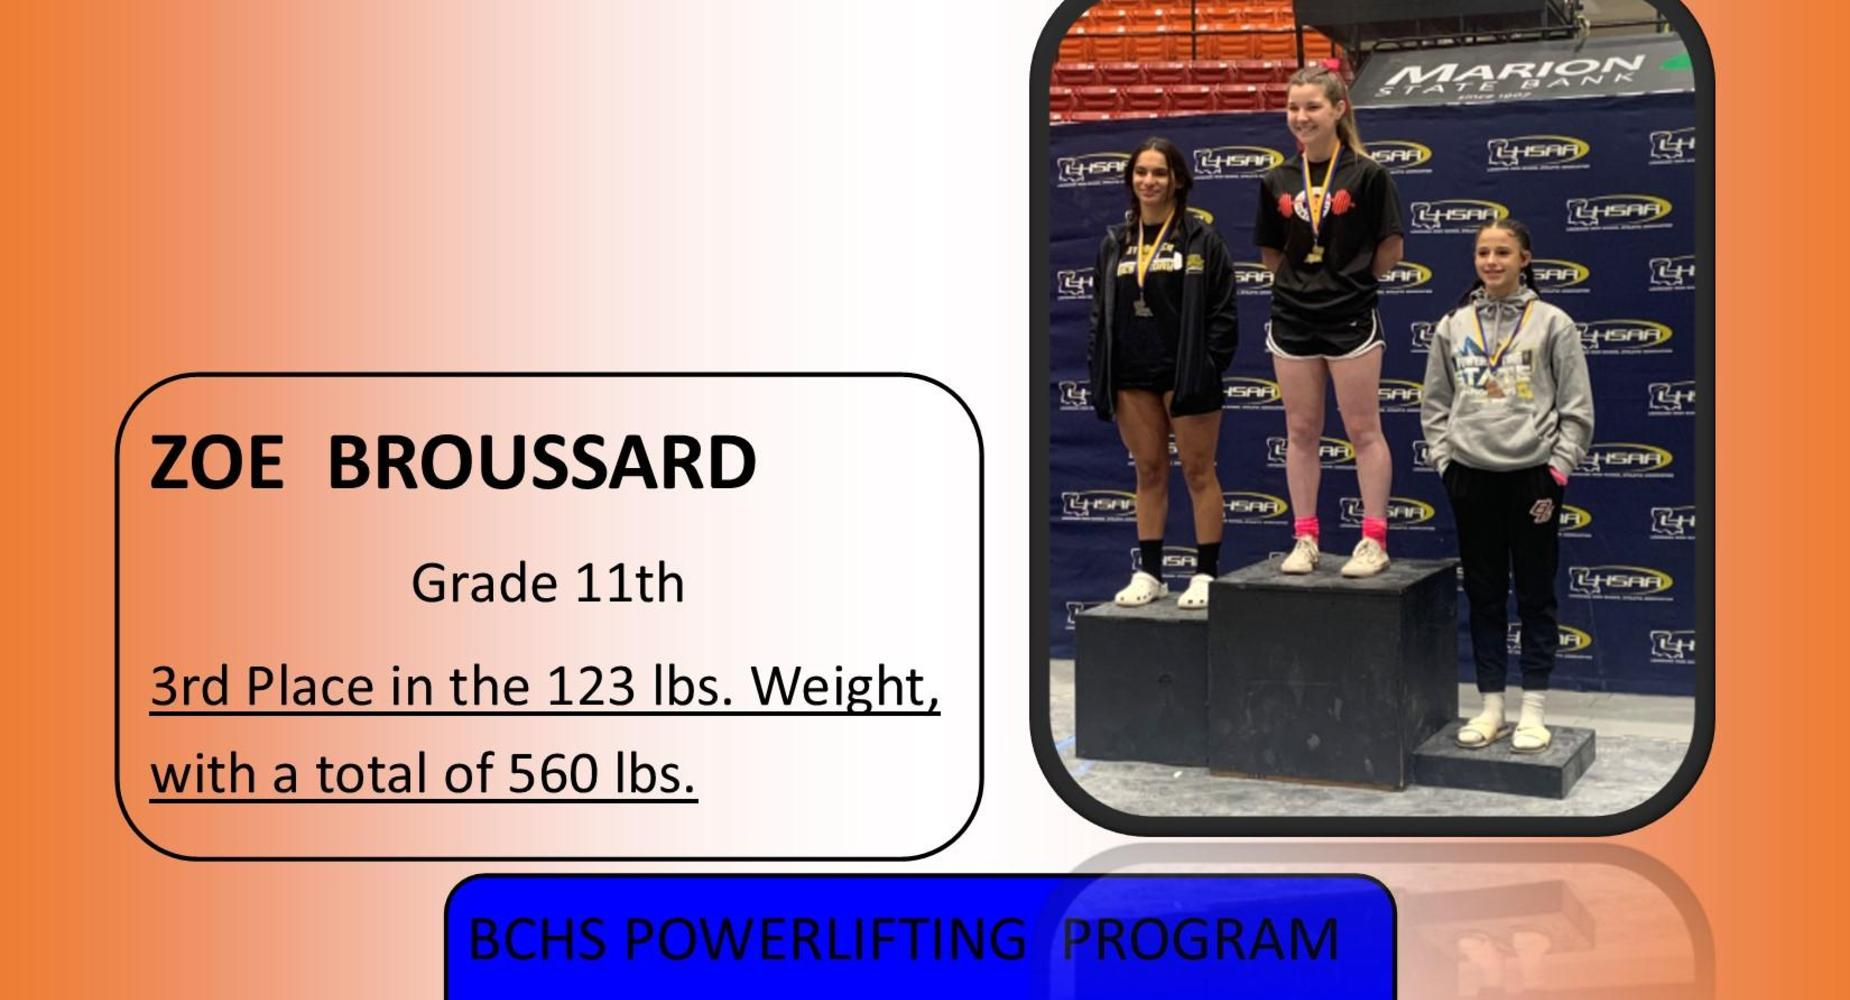 Zoe Broussard - Powerlifting Results